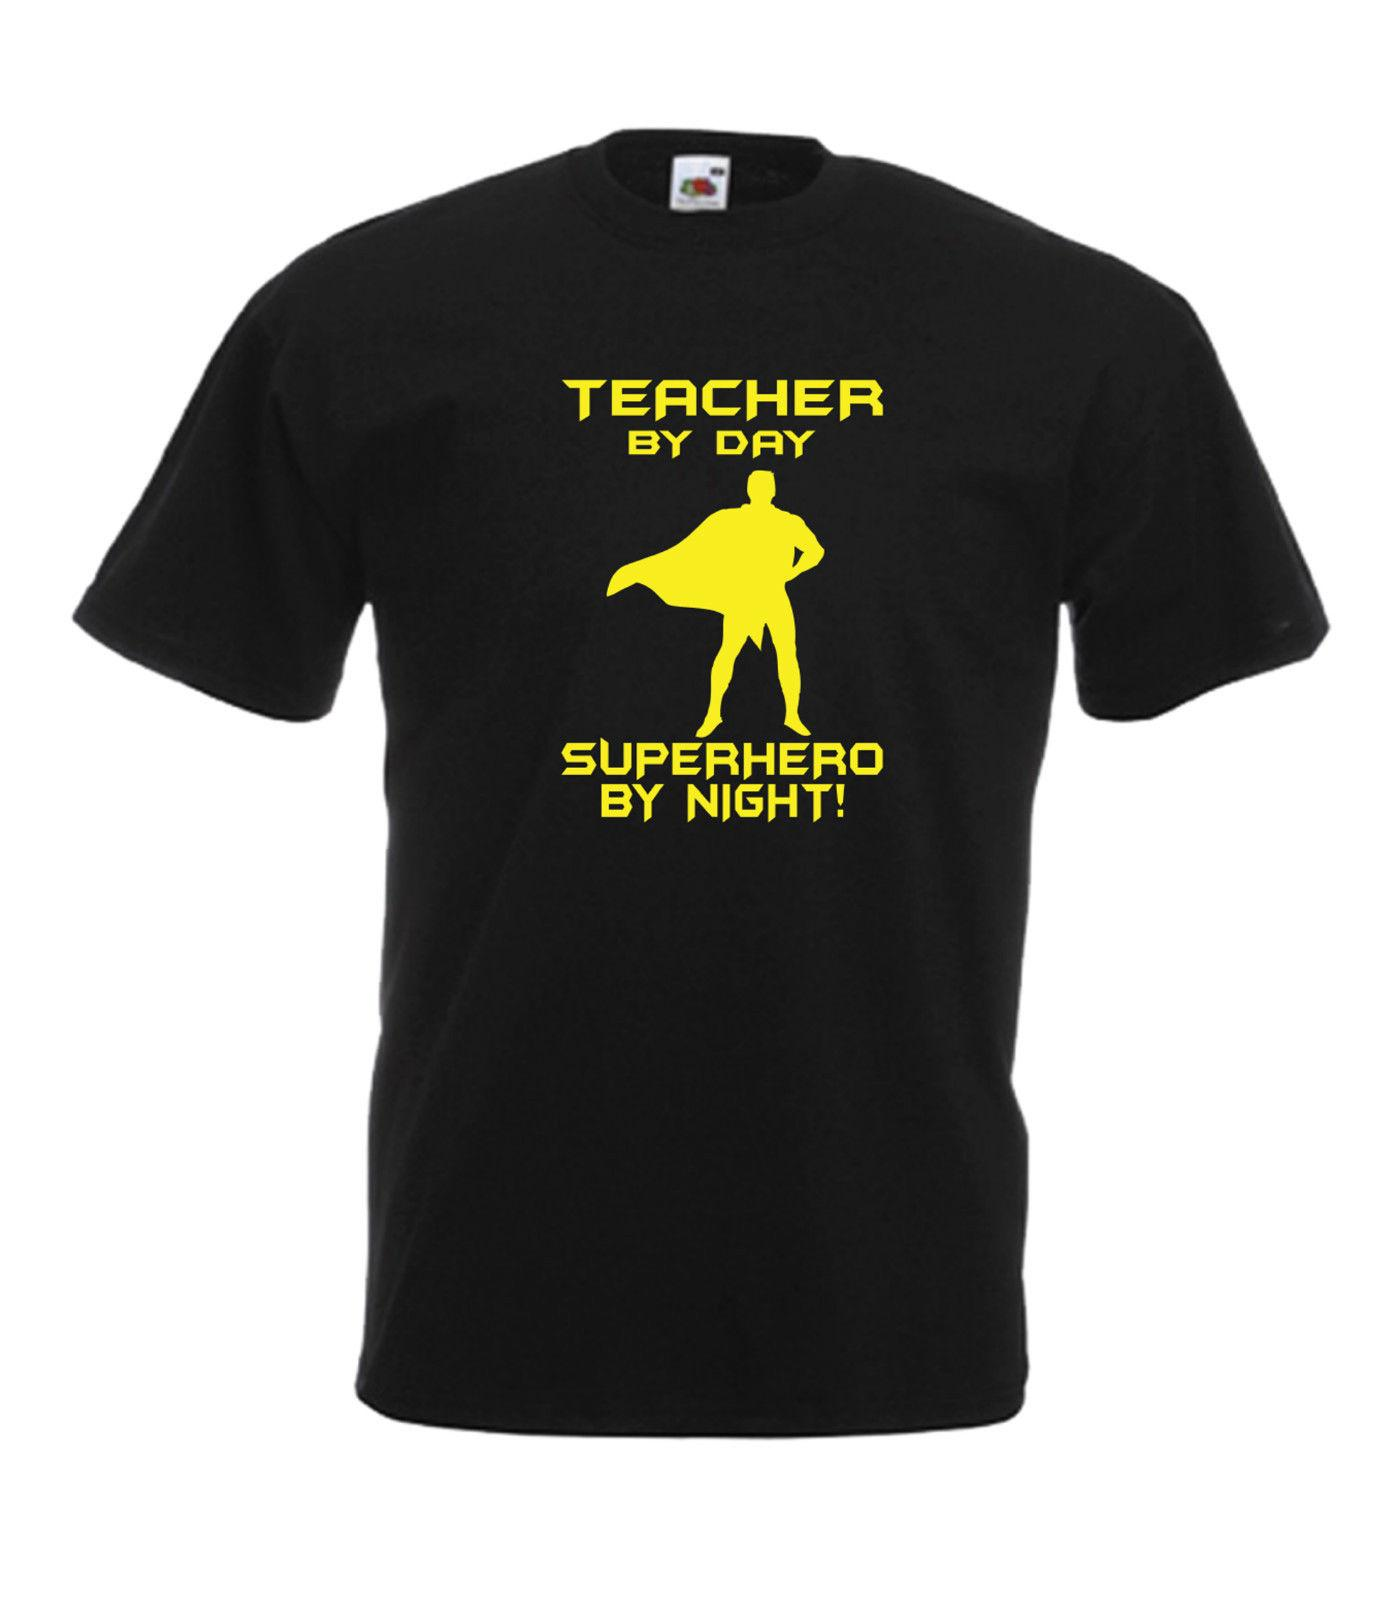 TEACHER SUPERHERO Funny School Christmas Birthday Gift Idea Mens Womens T SHIRT Casual Male Tshirt Men Tops Tees Shirts Geek From